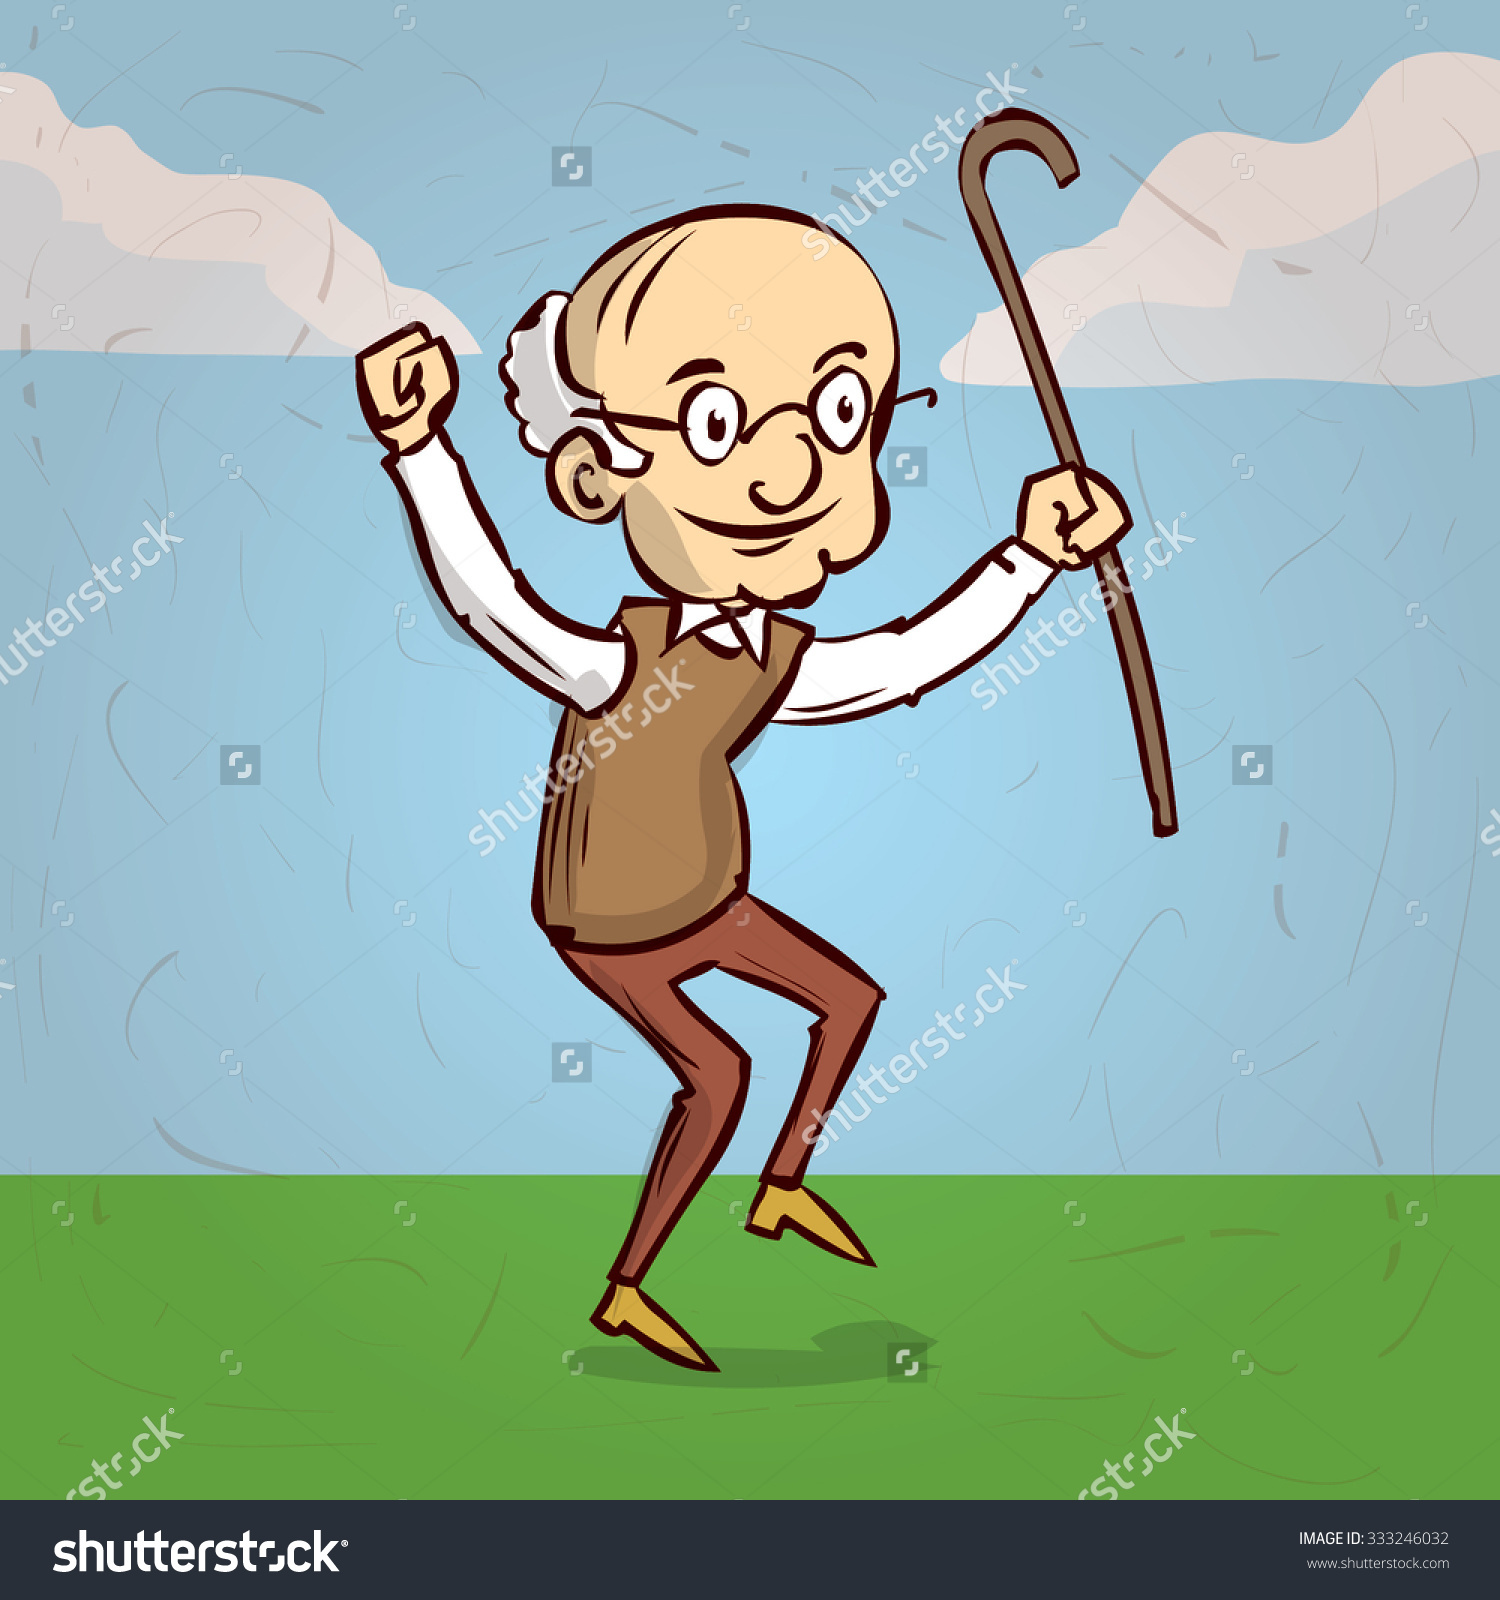 stock-vector-an-old-man-with-a-cane-dancing-hand-drawn-cartoon-vector-illustration-333246032